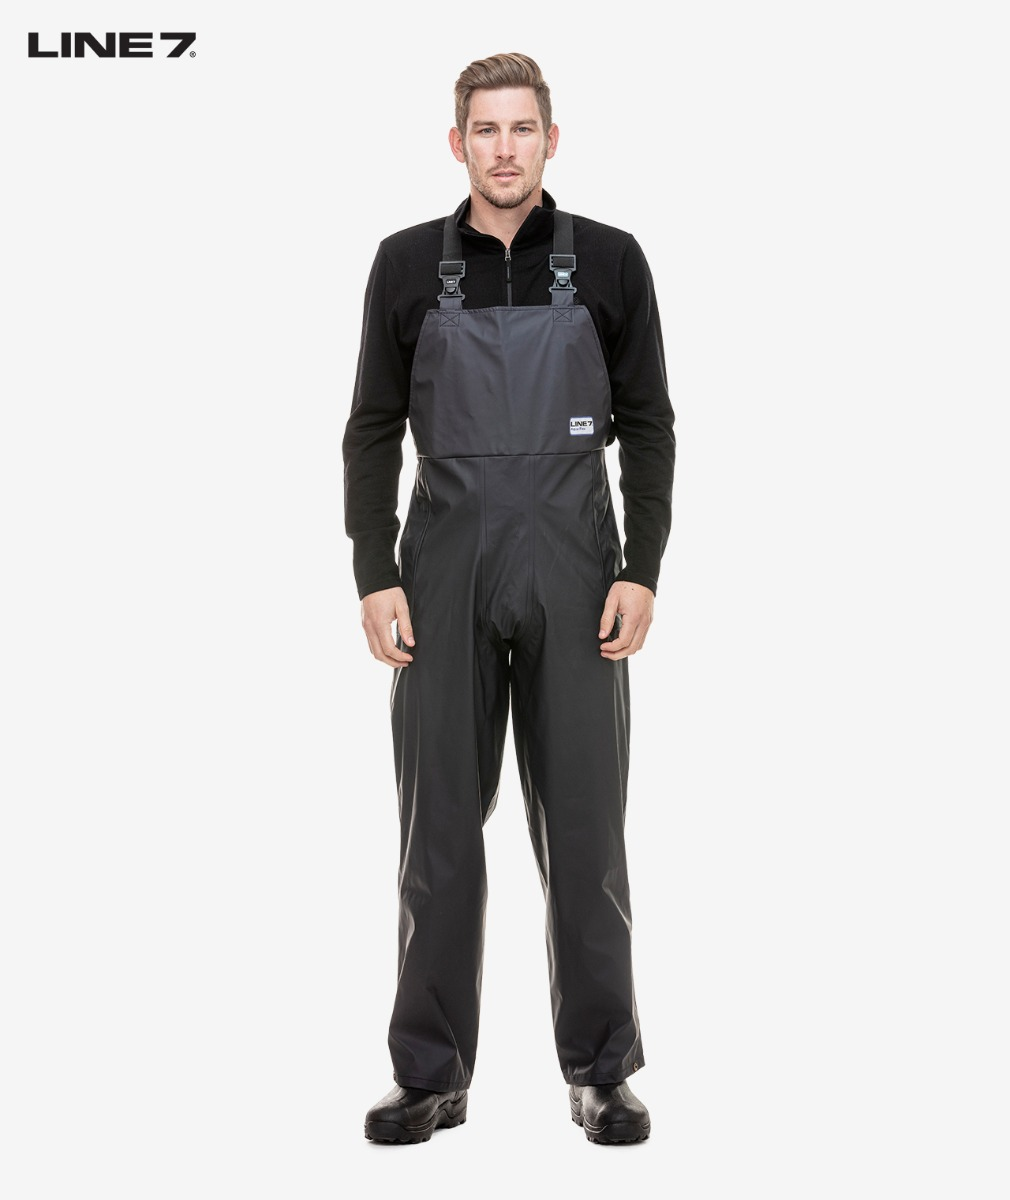 Line 7 Men's Aqua Flex Bib Waterproof Trouser